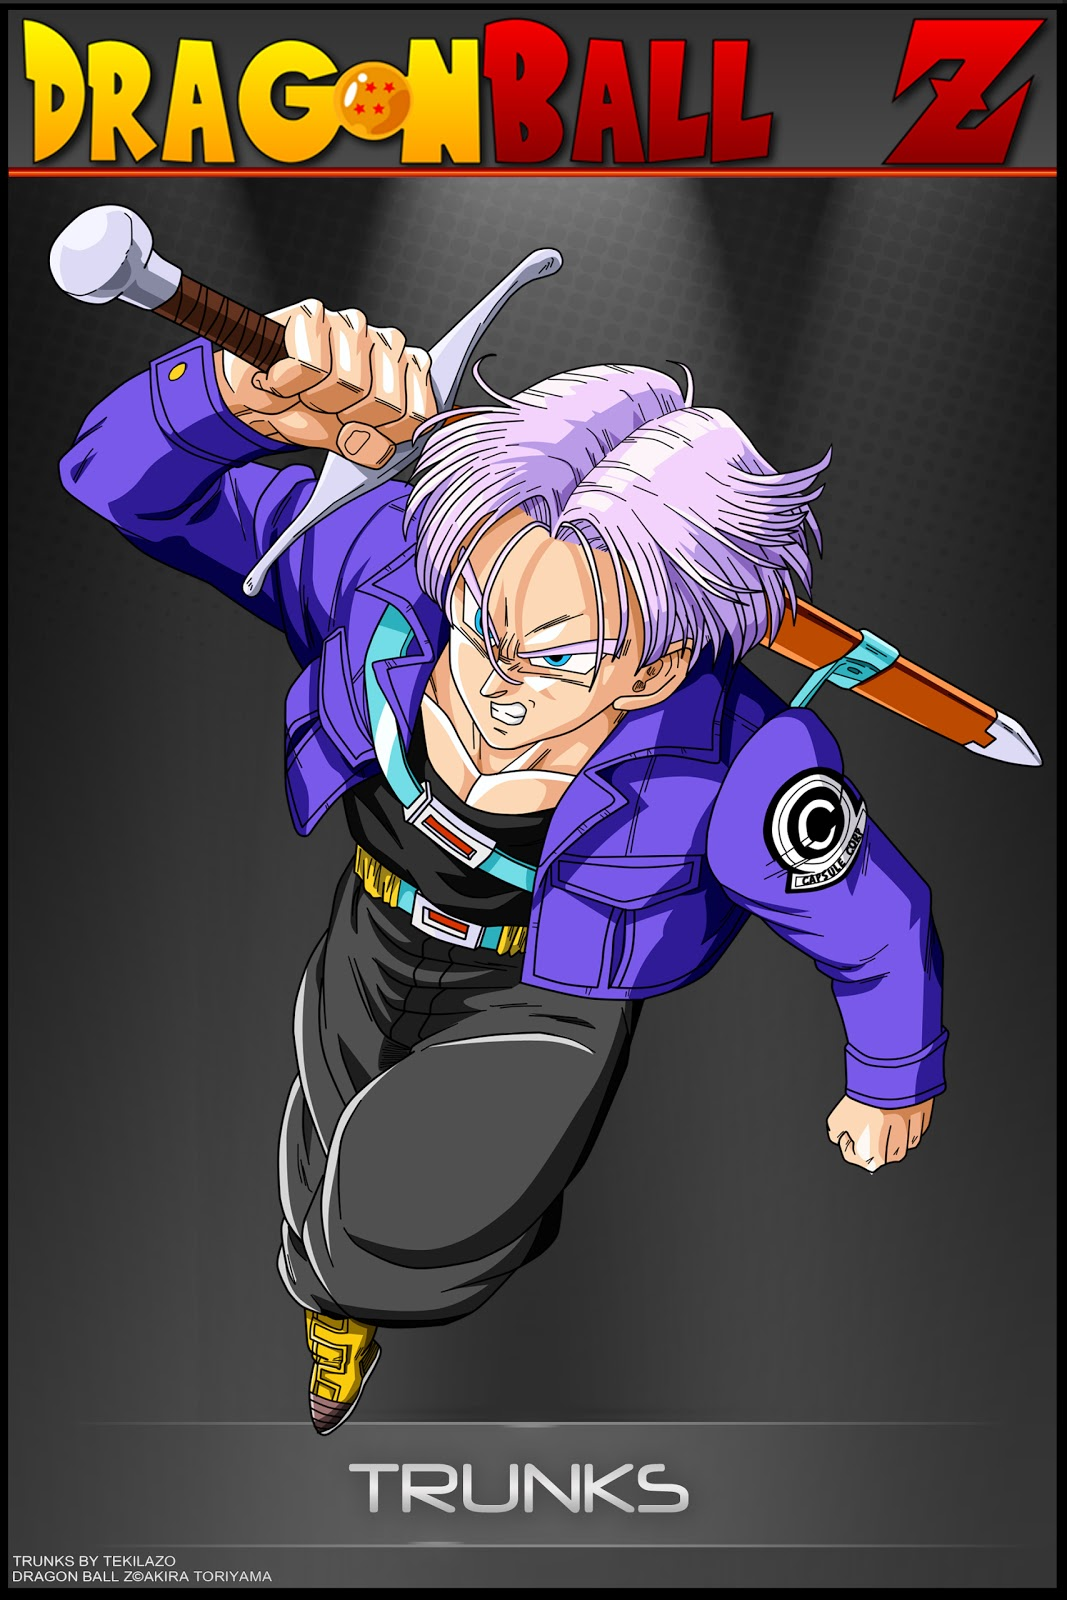 Dragon ball z wallpapers adult trunks - Photo dragon ball z ...